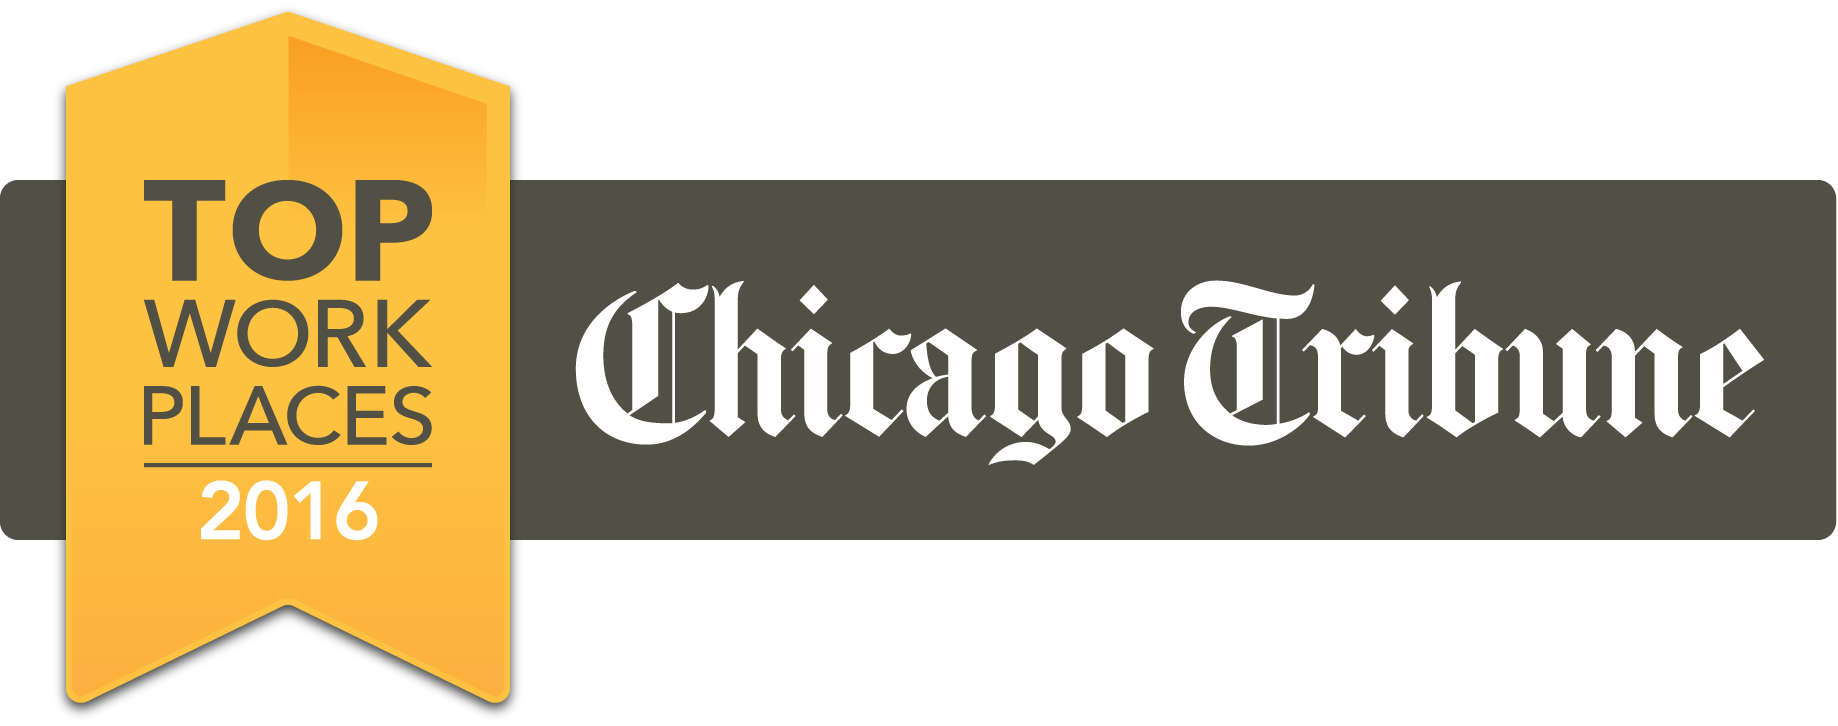 Chicago Tribune Top Workplace